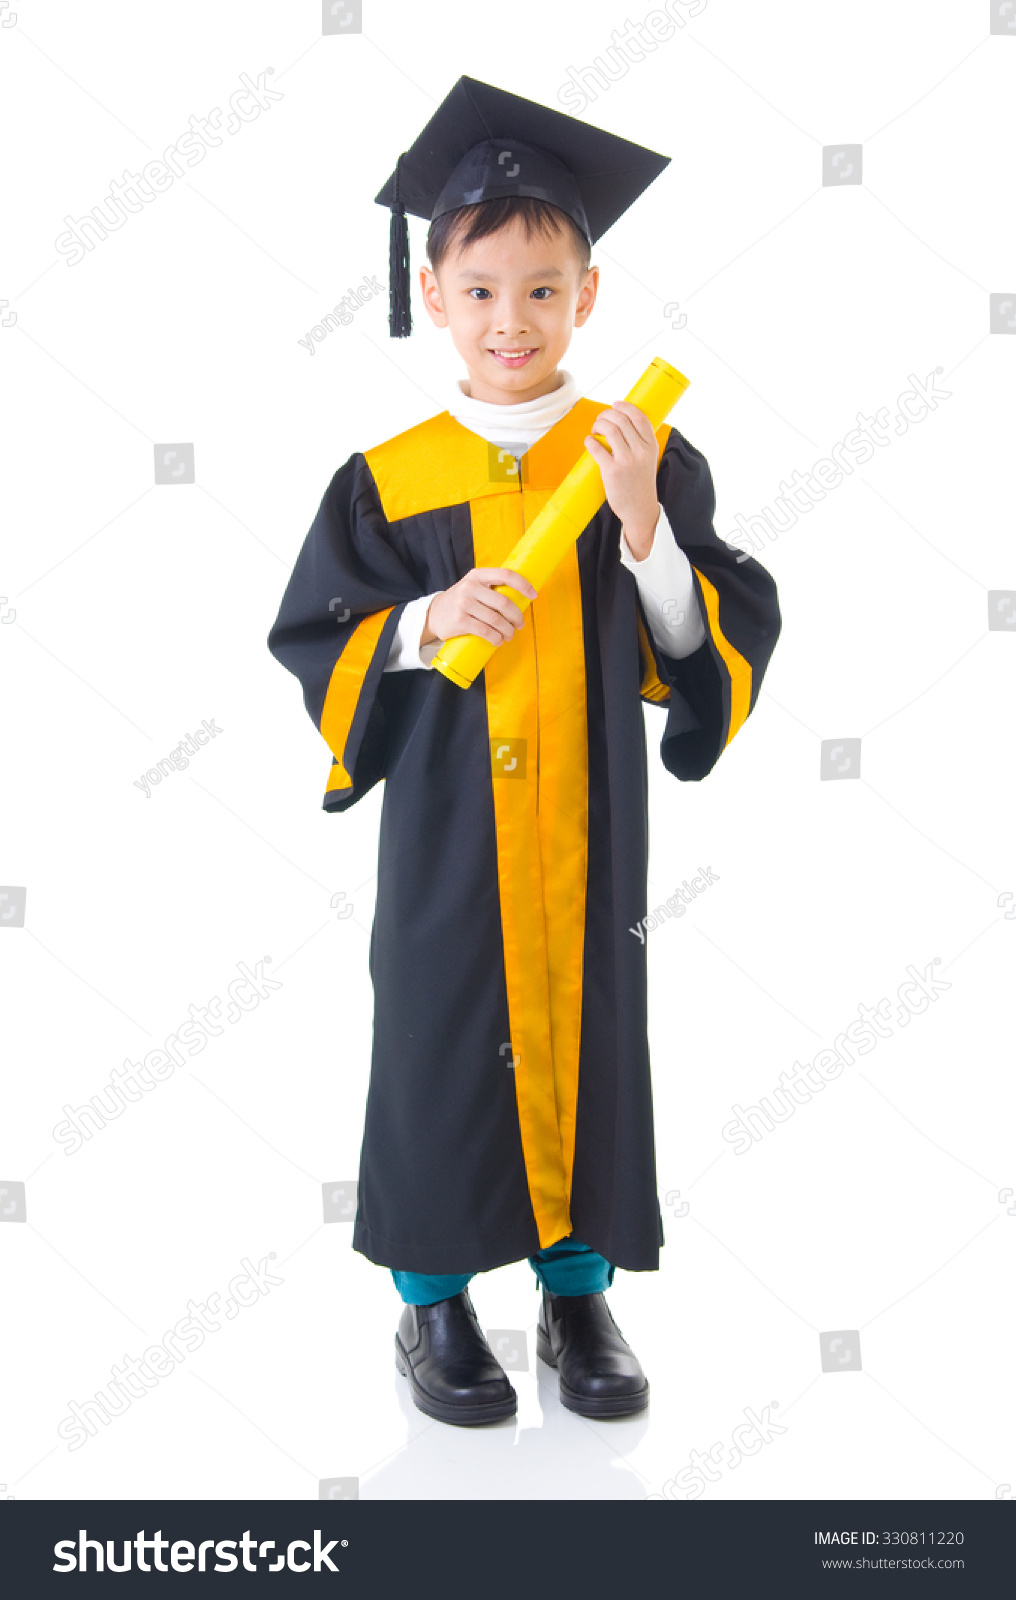 Royalty-free Asian kid in graduation gown #330811220 Stock Photo ...